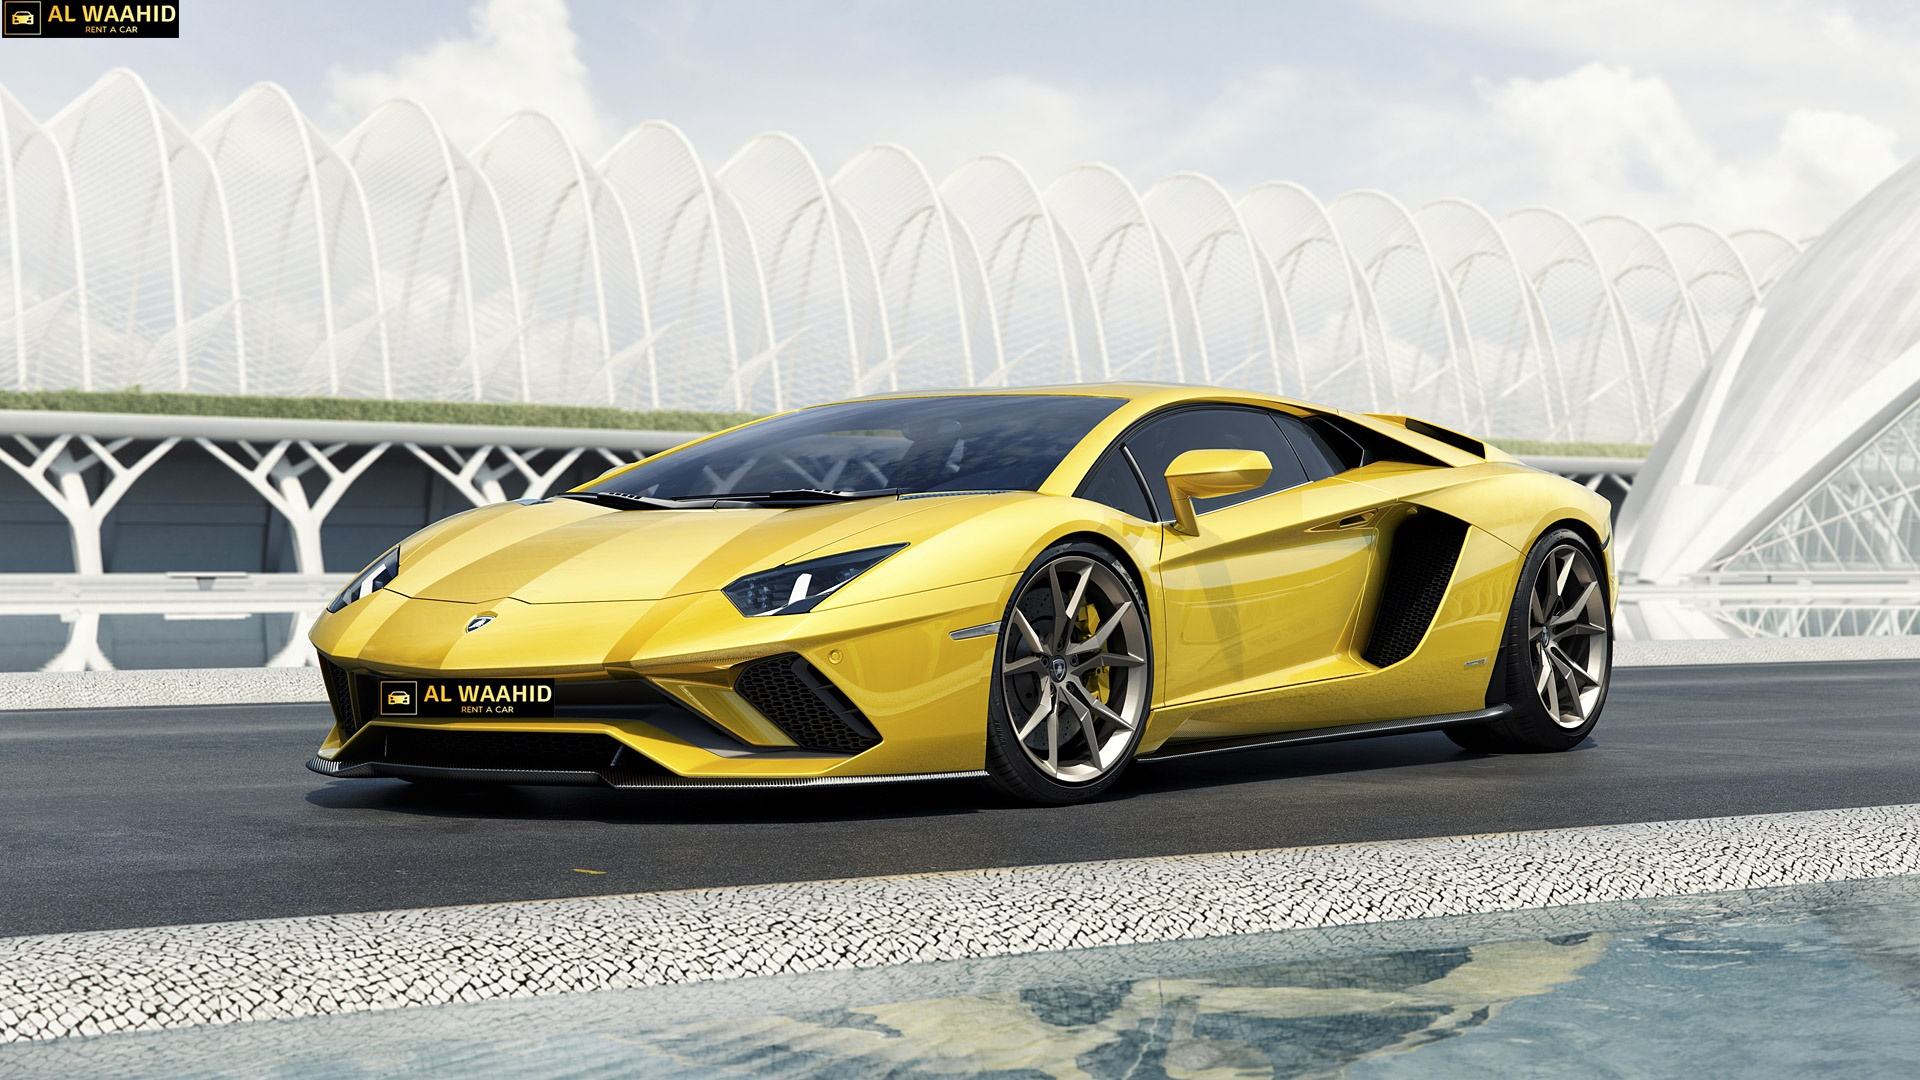 lamborghini aventador s rental dubai - luxury car -sports car rental